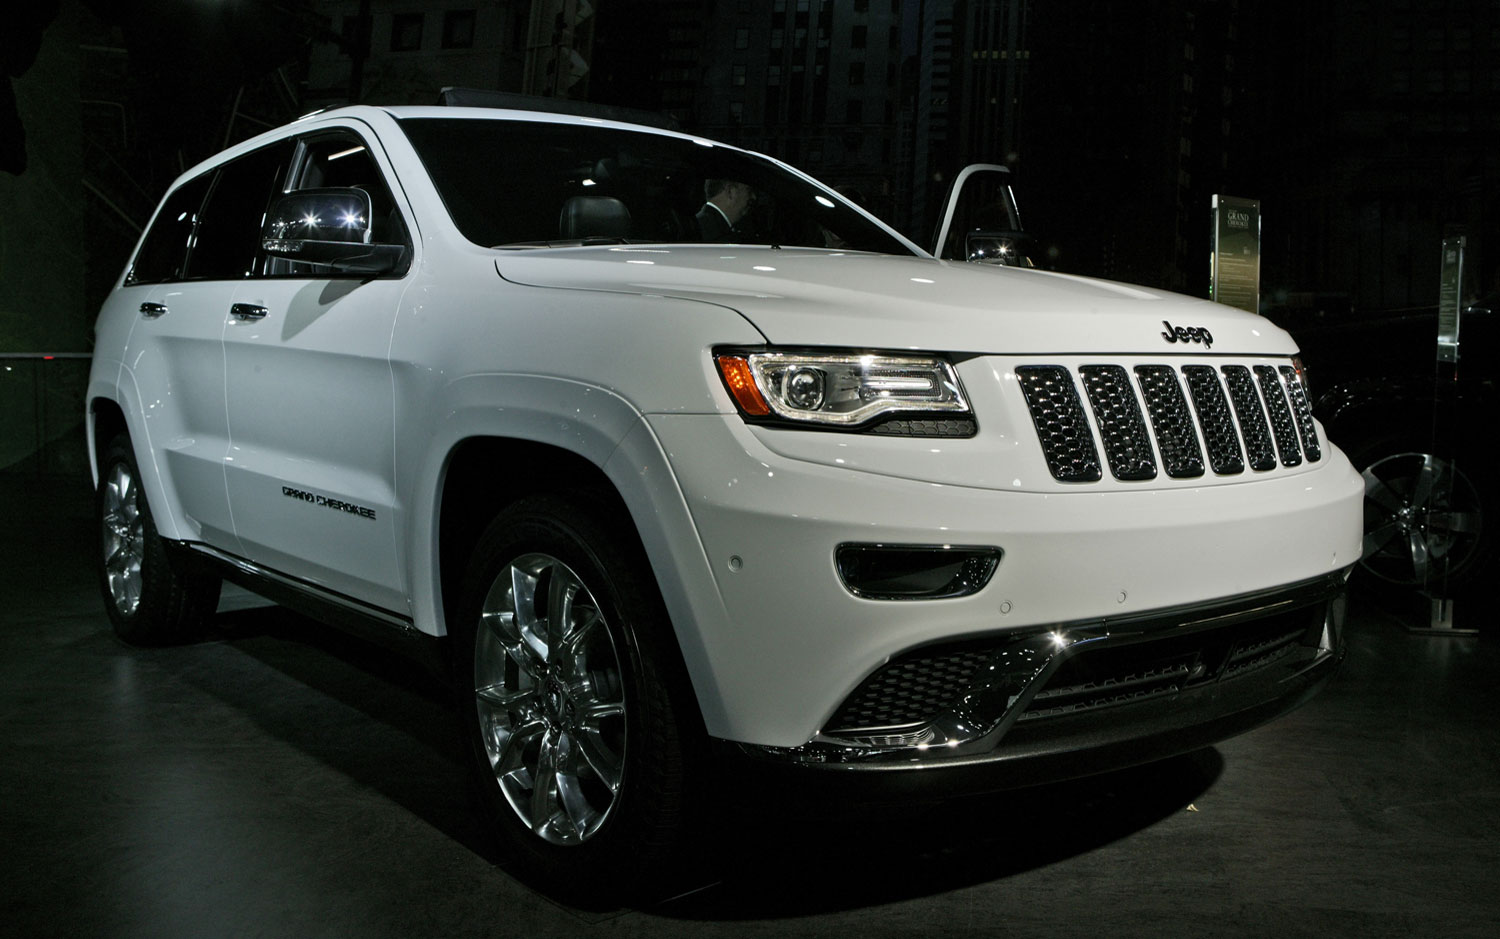 cars model 2013 2014 2014 jeep grand cherokee. Black Bedroom Furniture Sets. Home Design Ideas